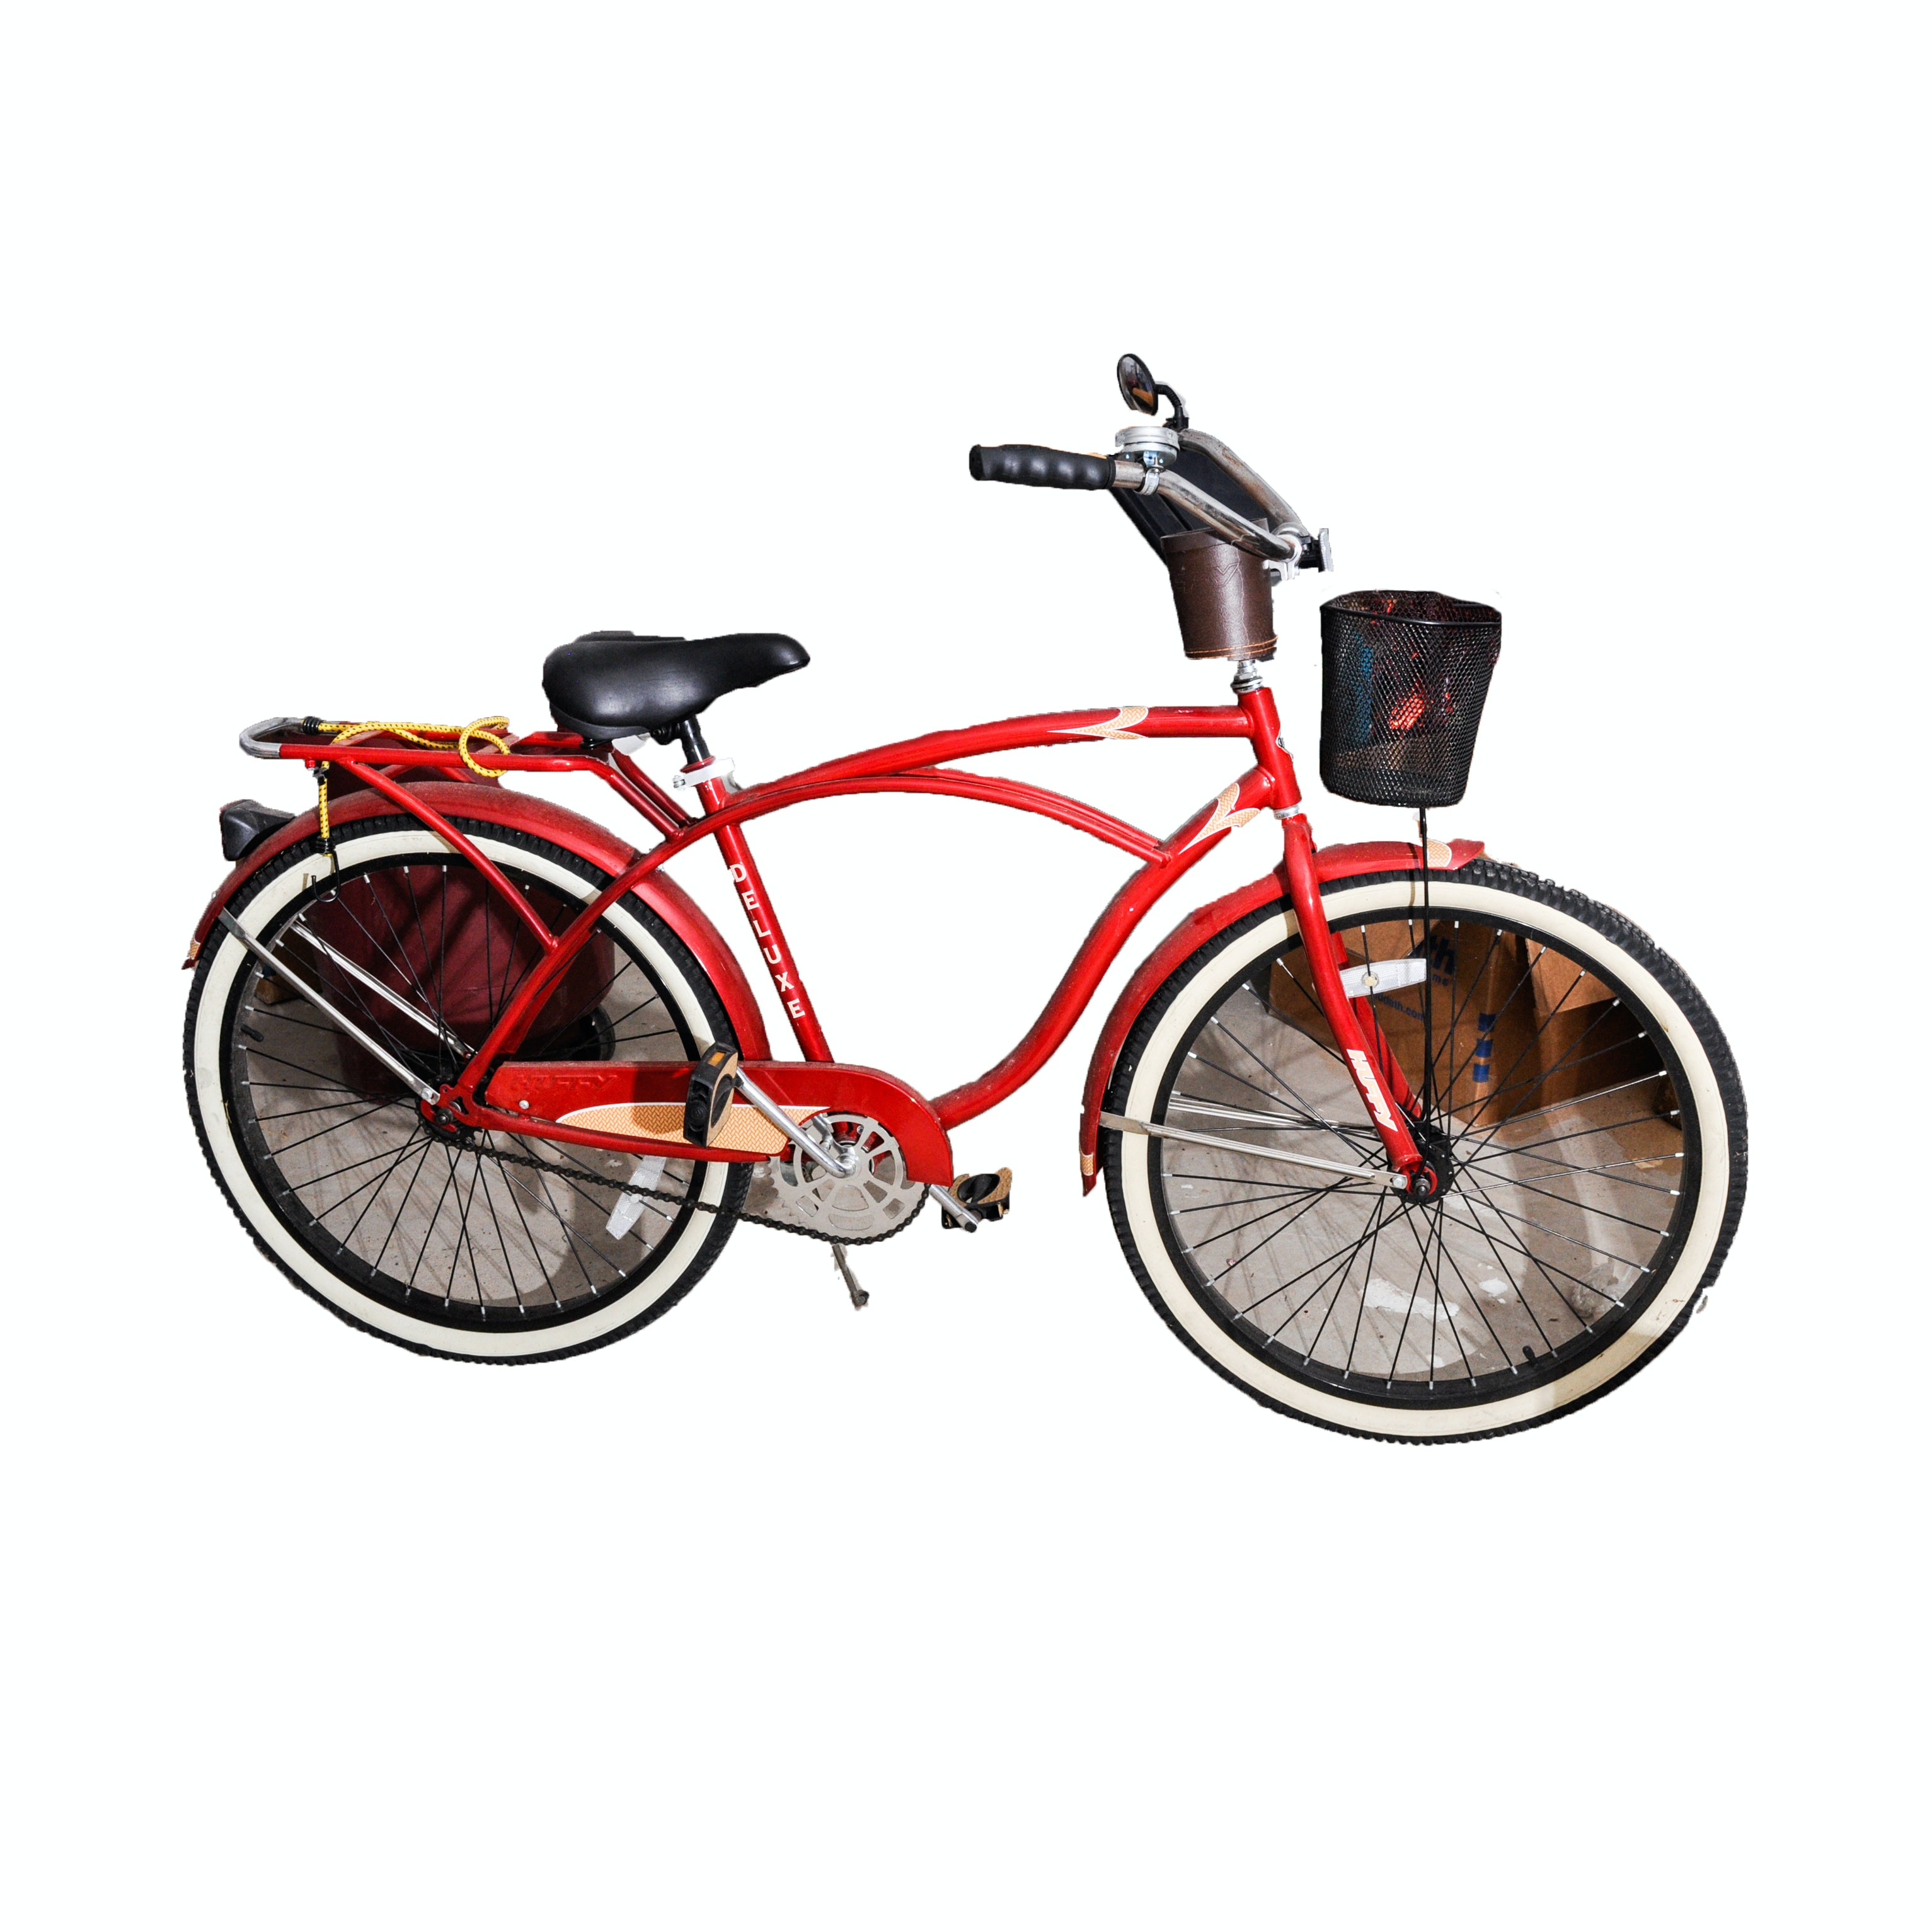 Huffy Deluxe Bicycle